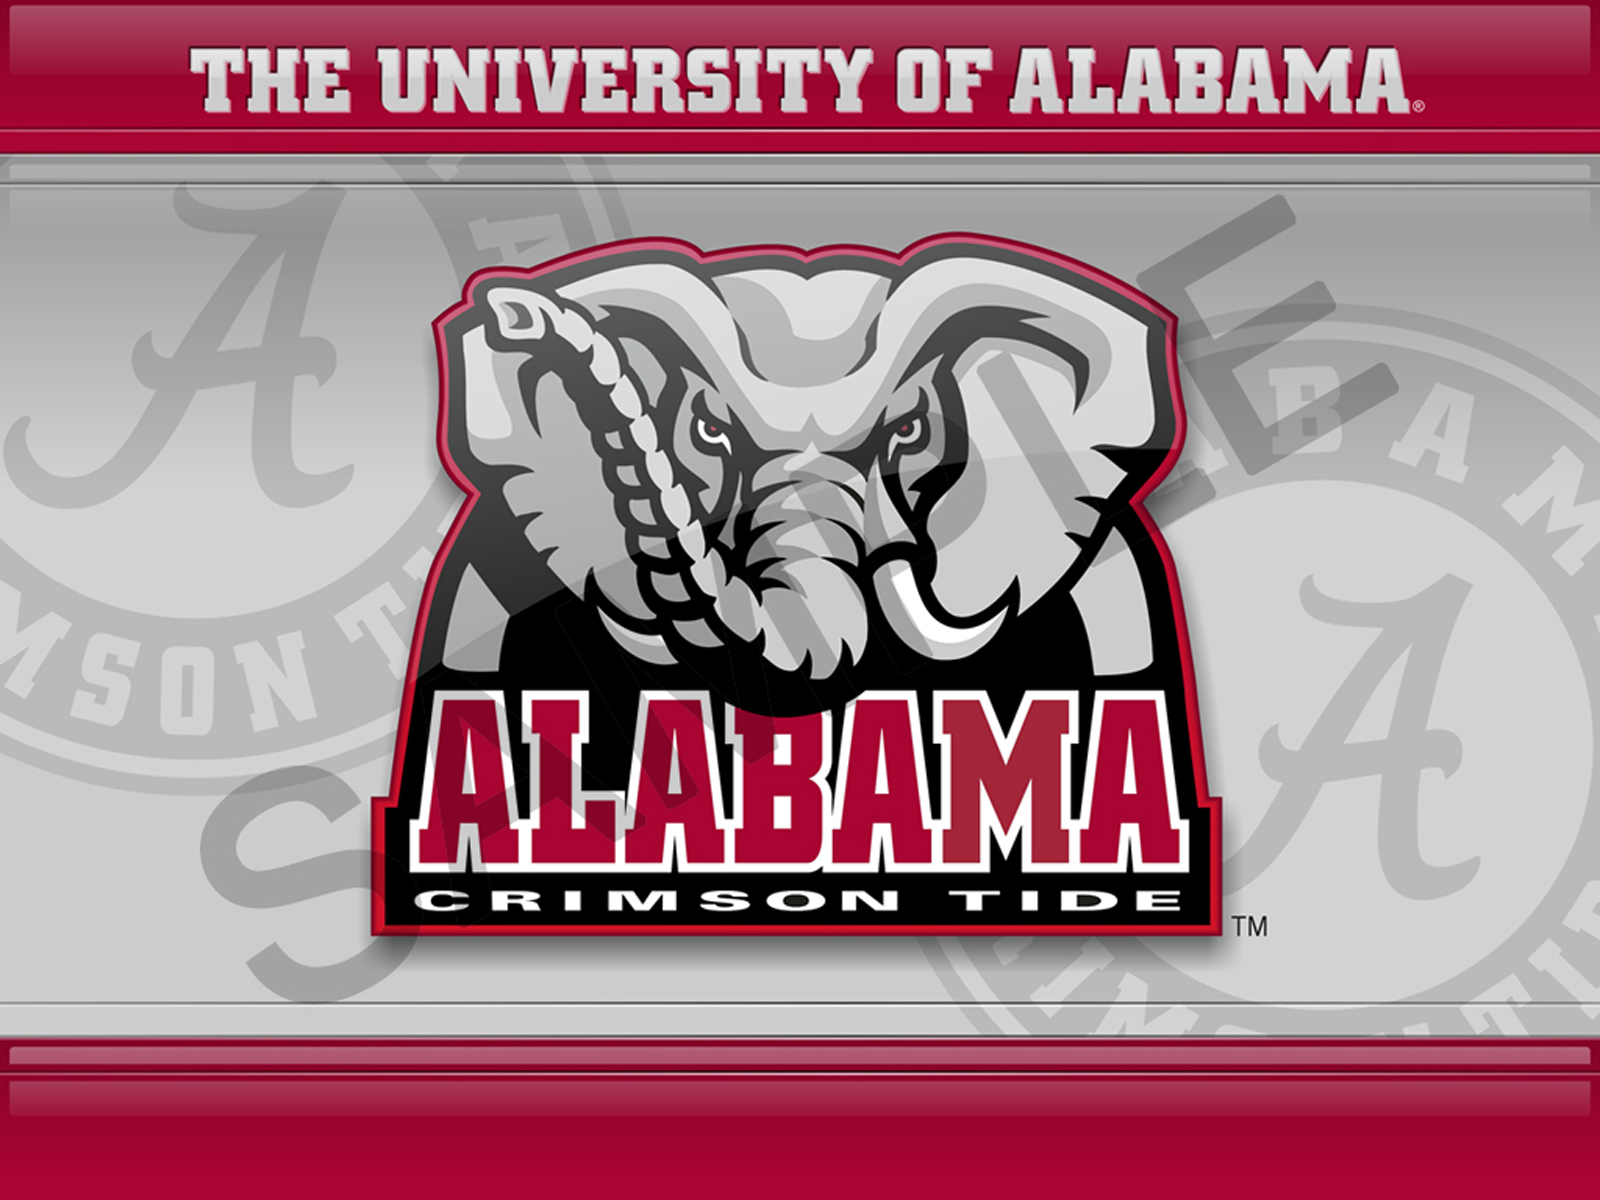 desktop wallpaper of University Of Alabama 1600x1200